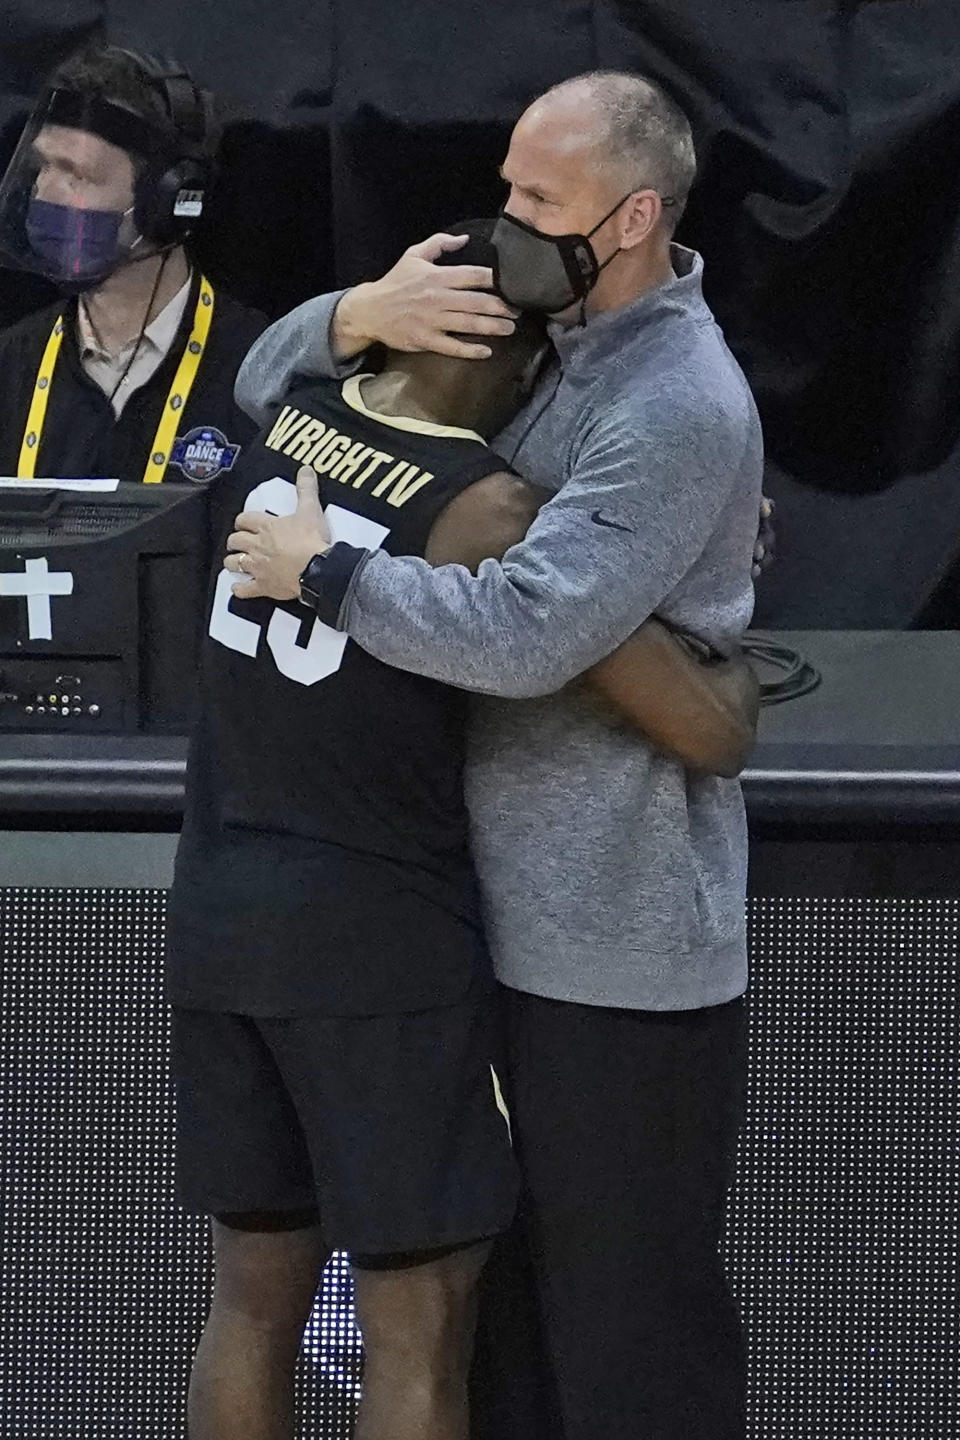 Colorado head coach Tad Boyle hugs McKinley Wright IV as he heads to the bench near the end of his teams 71-53 loss to Florida State during the second half of a second-round game in the NCAA college basketball tournament at Farmers Coliseum in Indianapolis, Monday, March 22, 2021. (AP Photo/Charles Rex Arbogast)